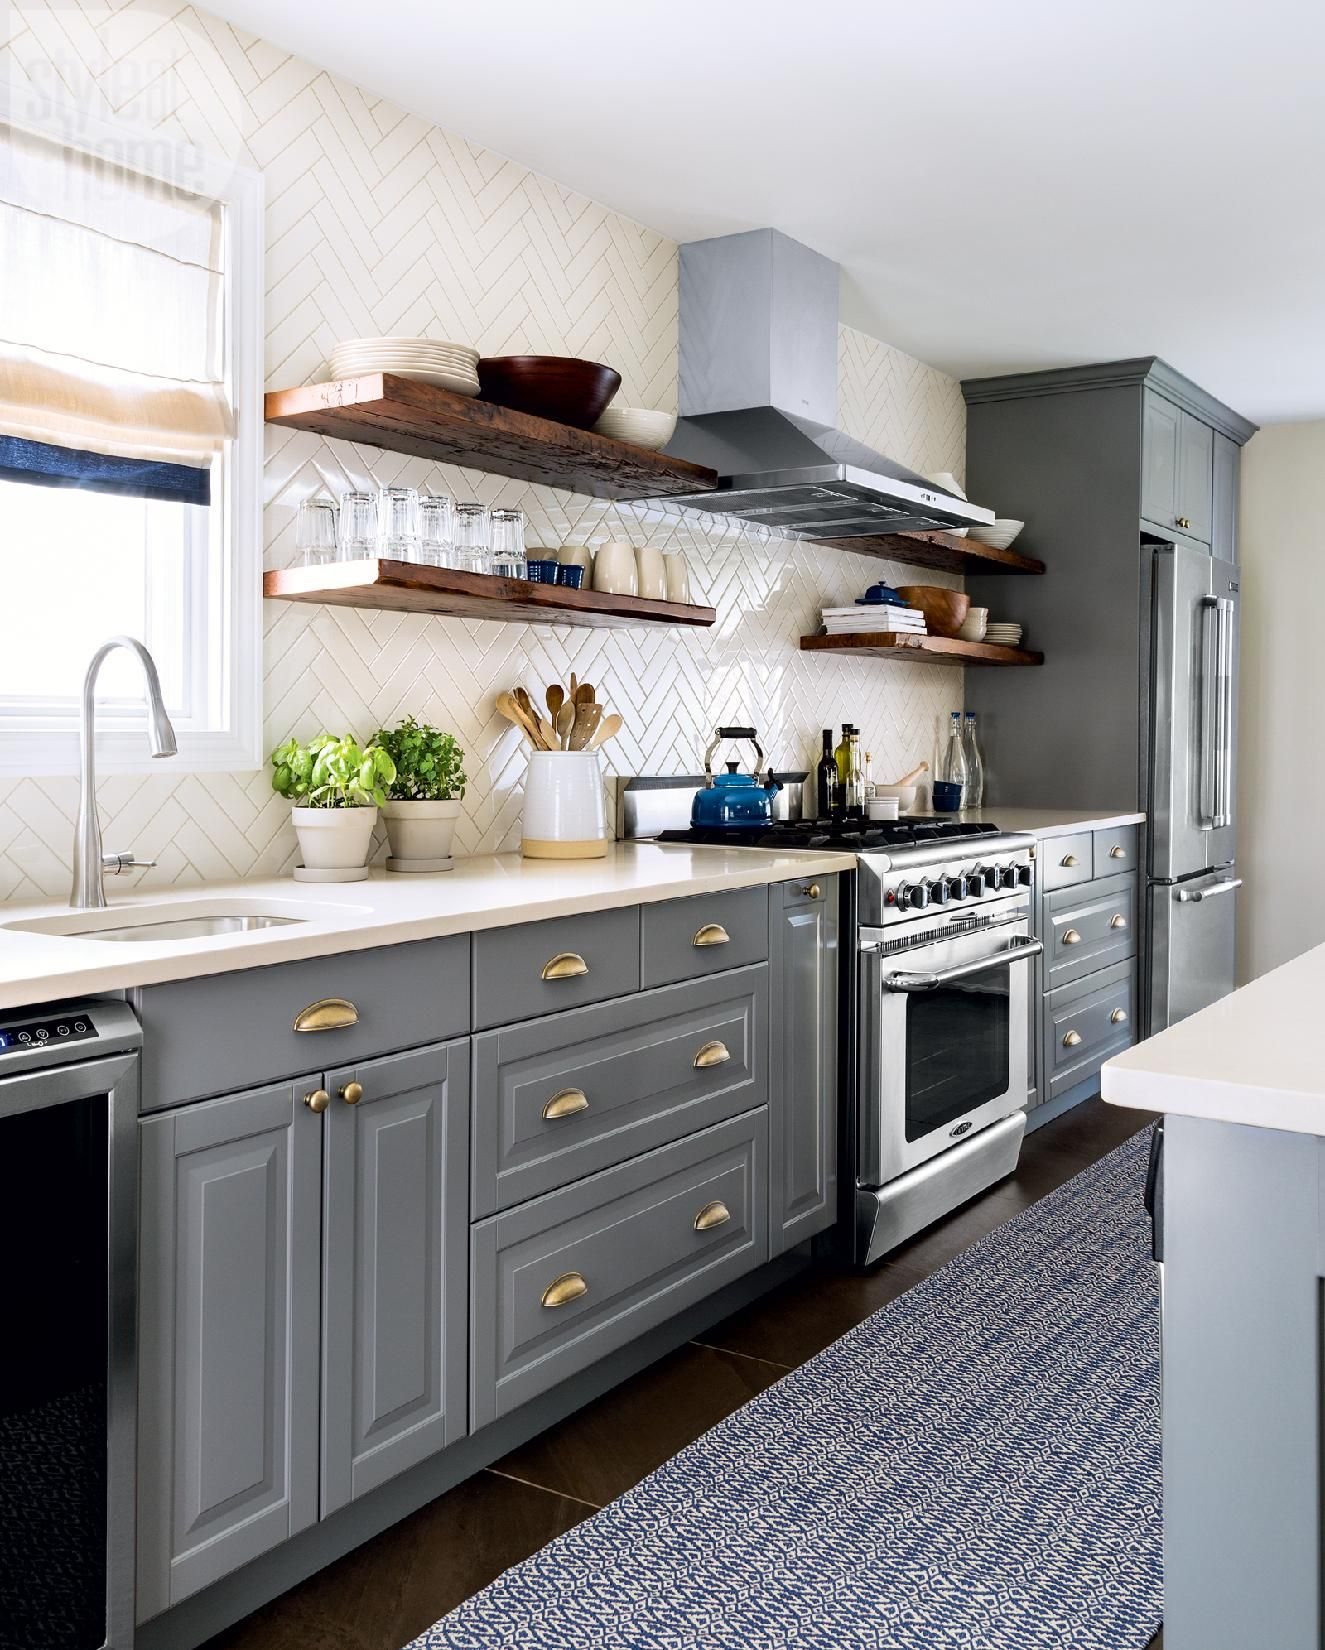 After: Sleek and spacious design - Narrow and outdated kitchen gets a sleek and spacious renovation